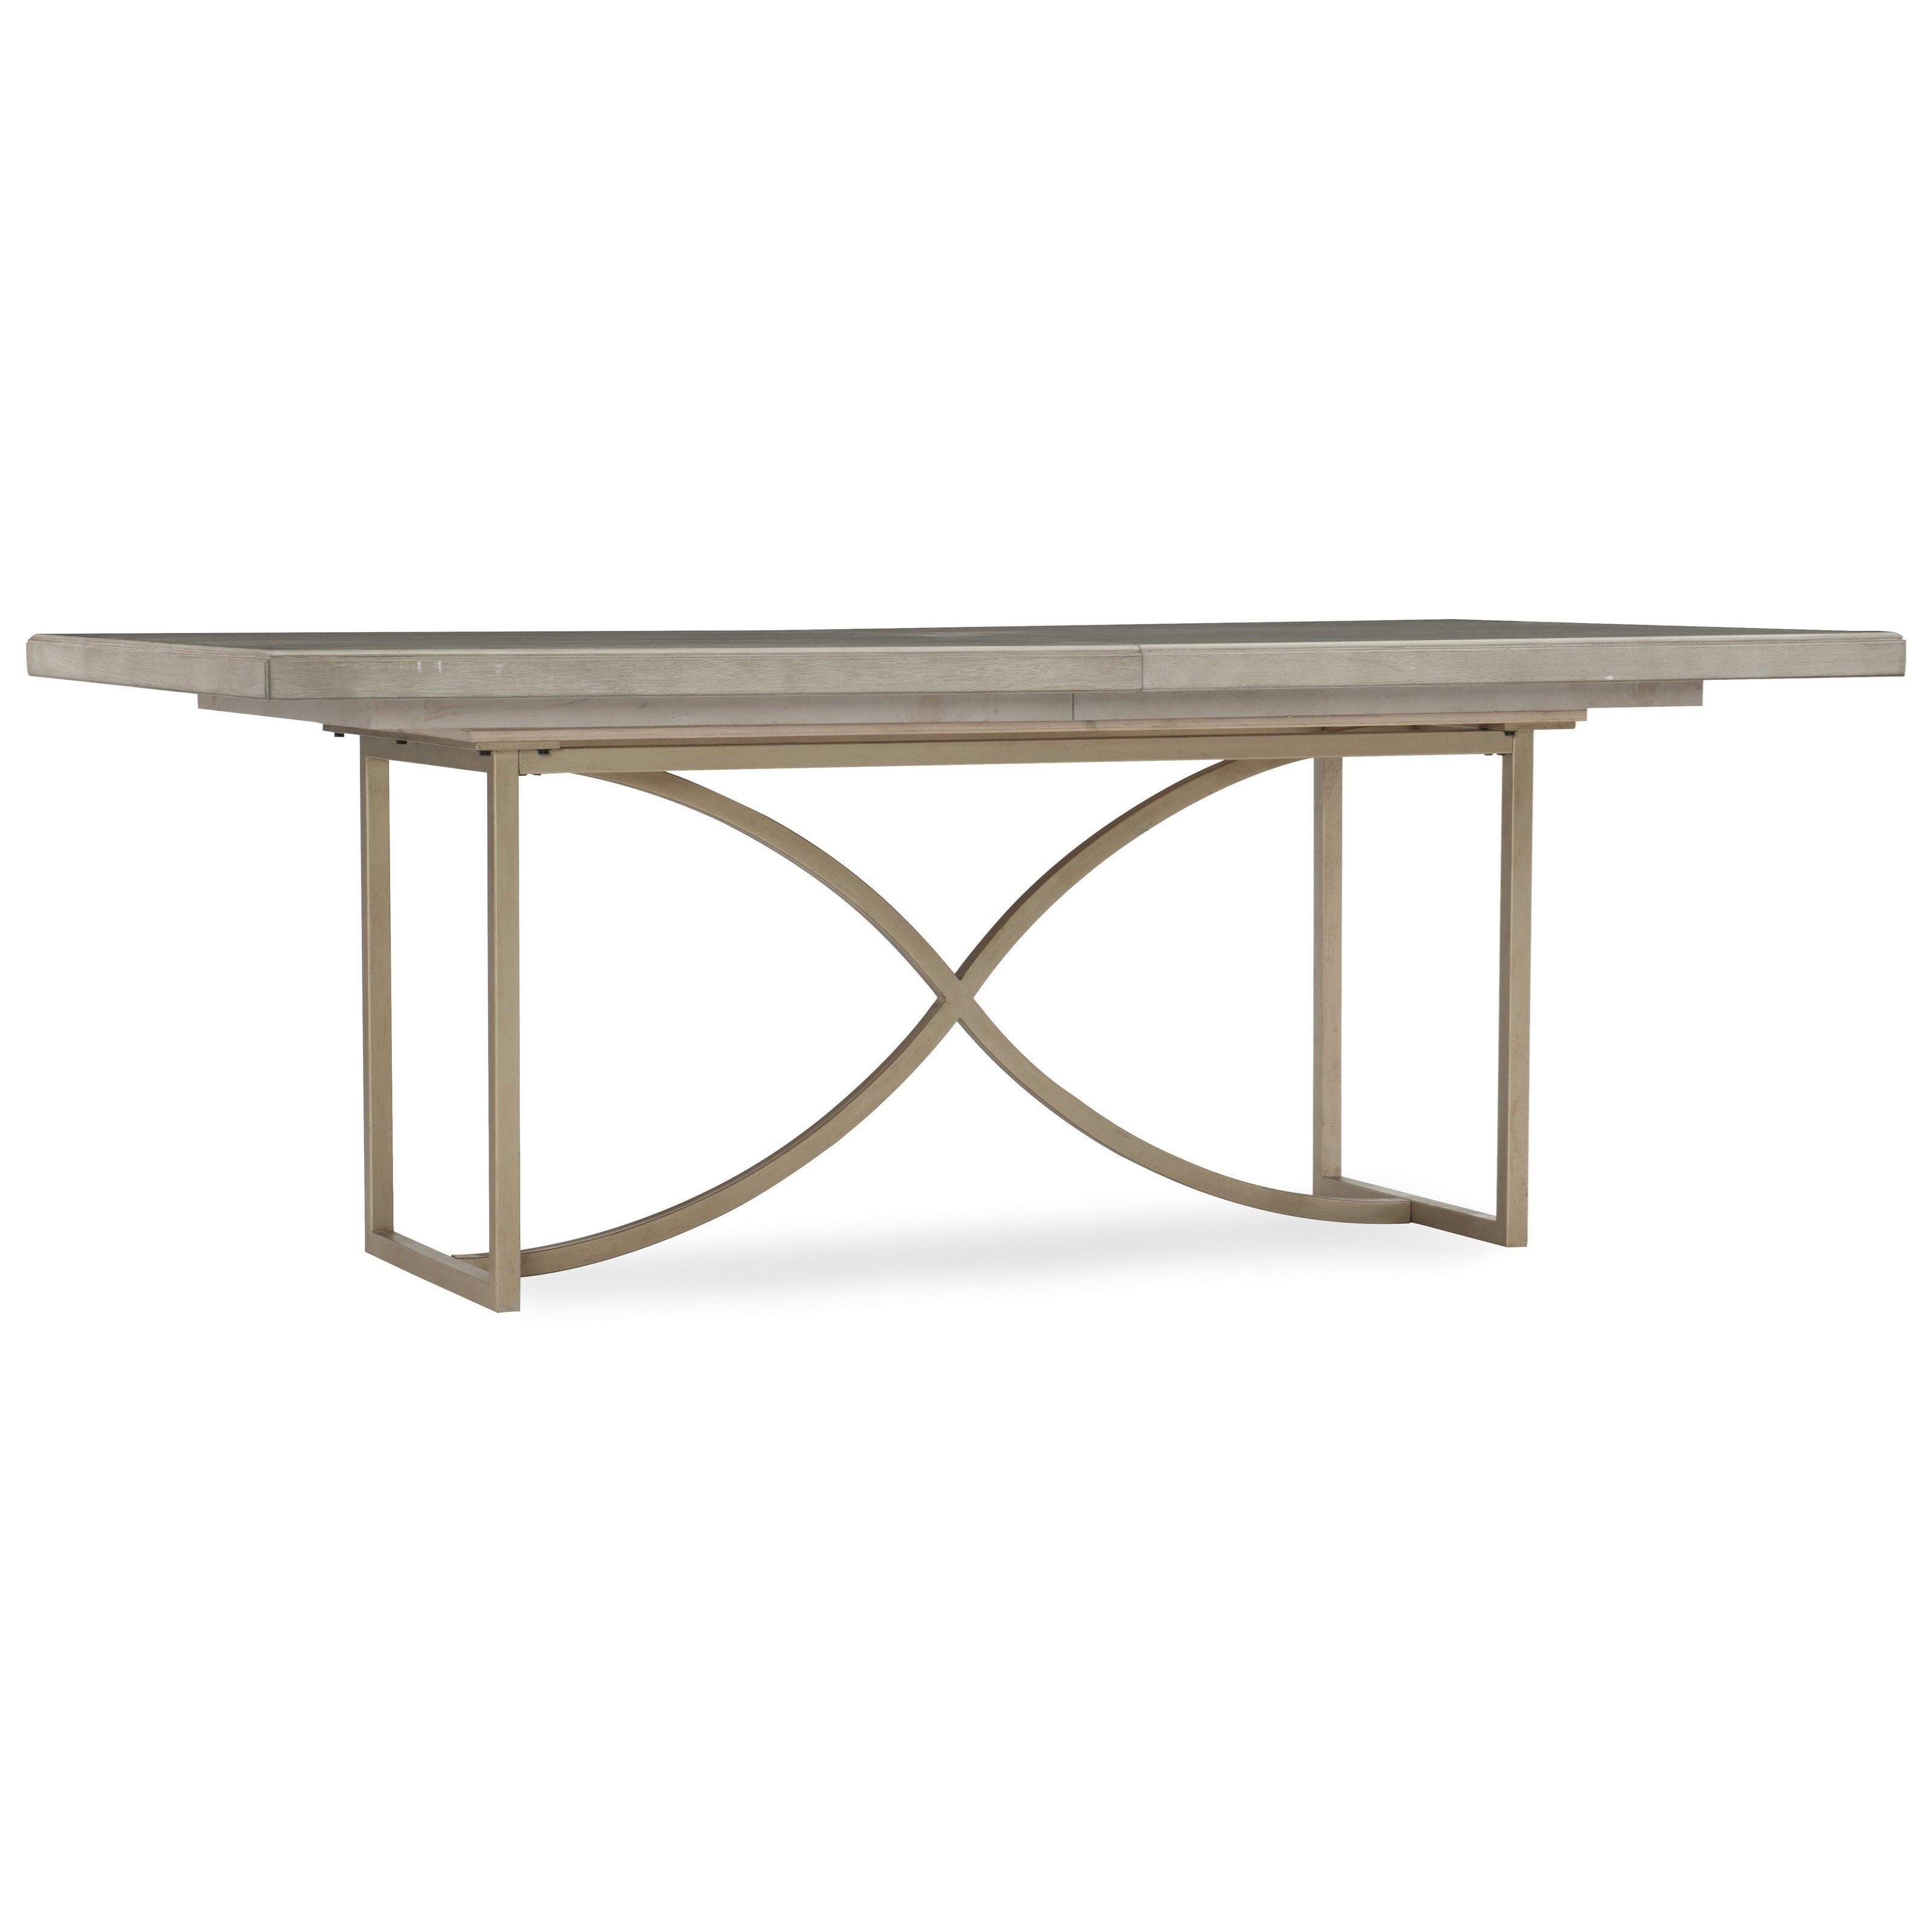 Elixir 80in Rectangular Dining Table with 20in Leaf by Hooker Furniture at Miller Waldrop Furniture and Decor